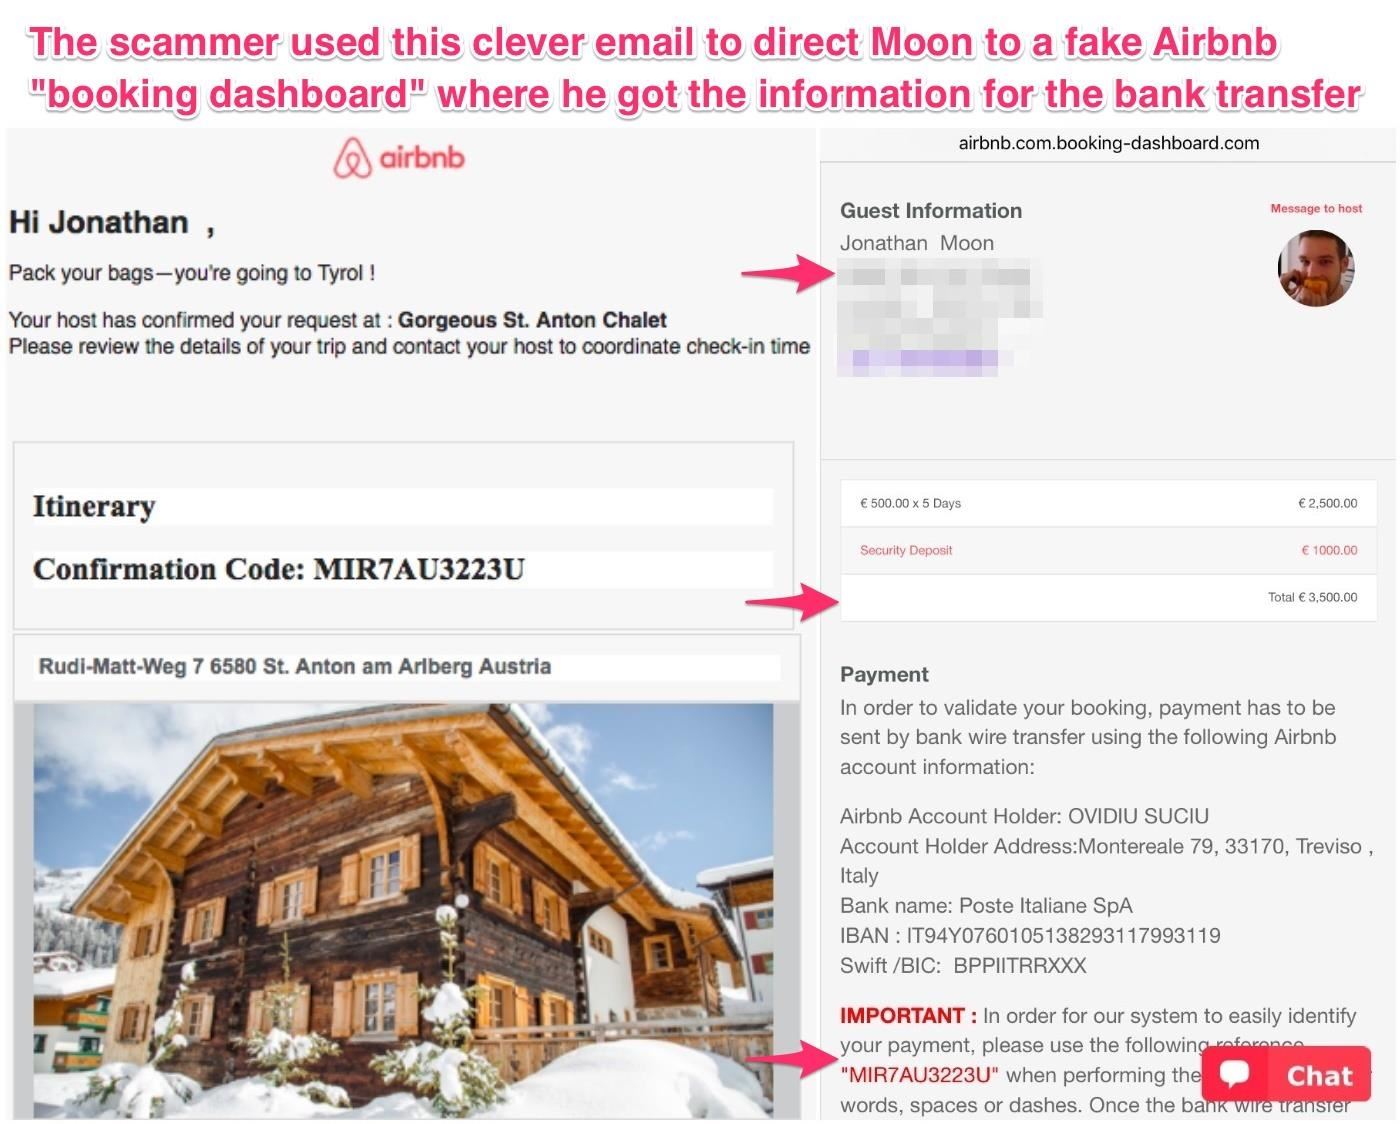 How an Airbnb Listing Scammed $3,700 Out of a Tech-Savvy User